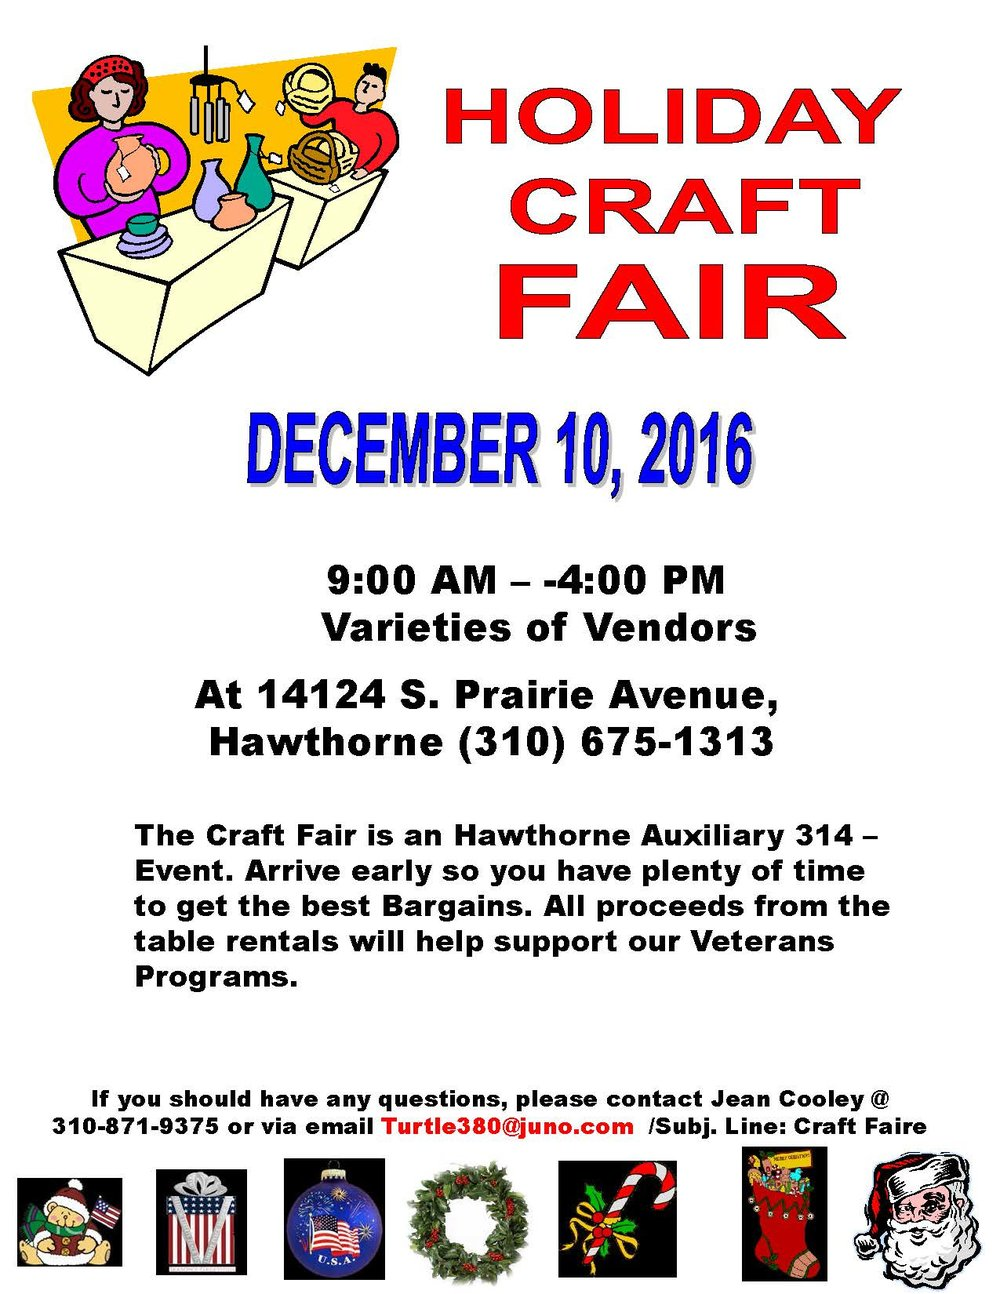 cm_events-HOLIDAY Craft Faire2016.jpg